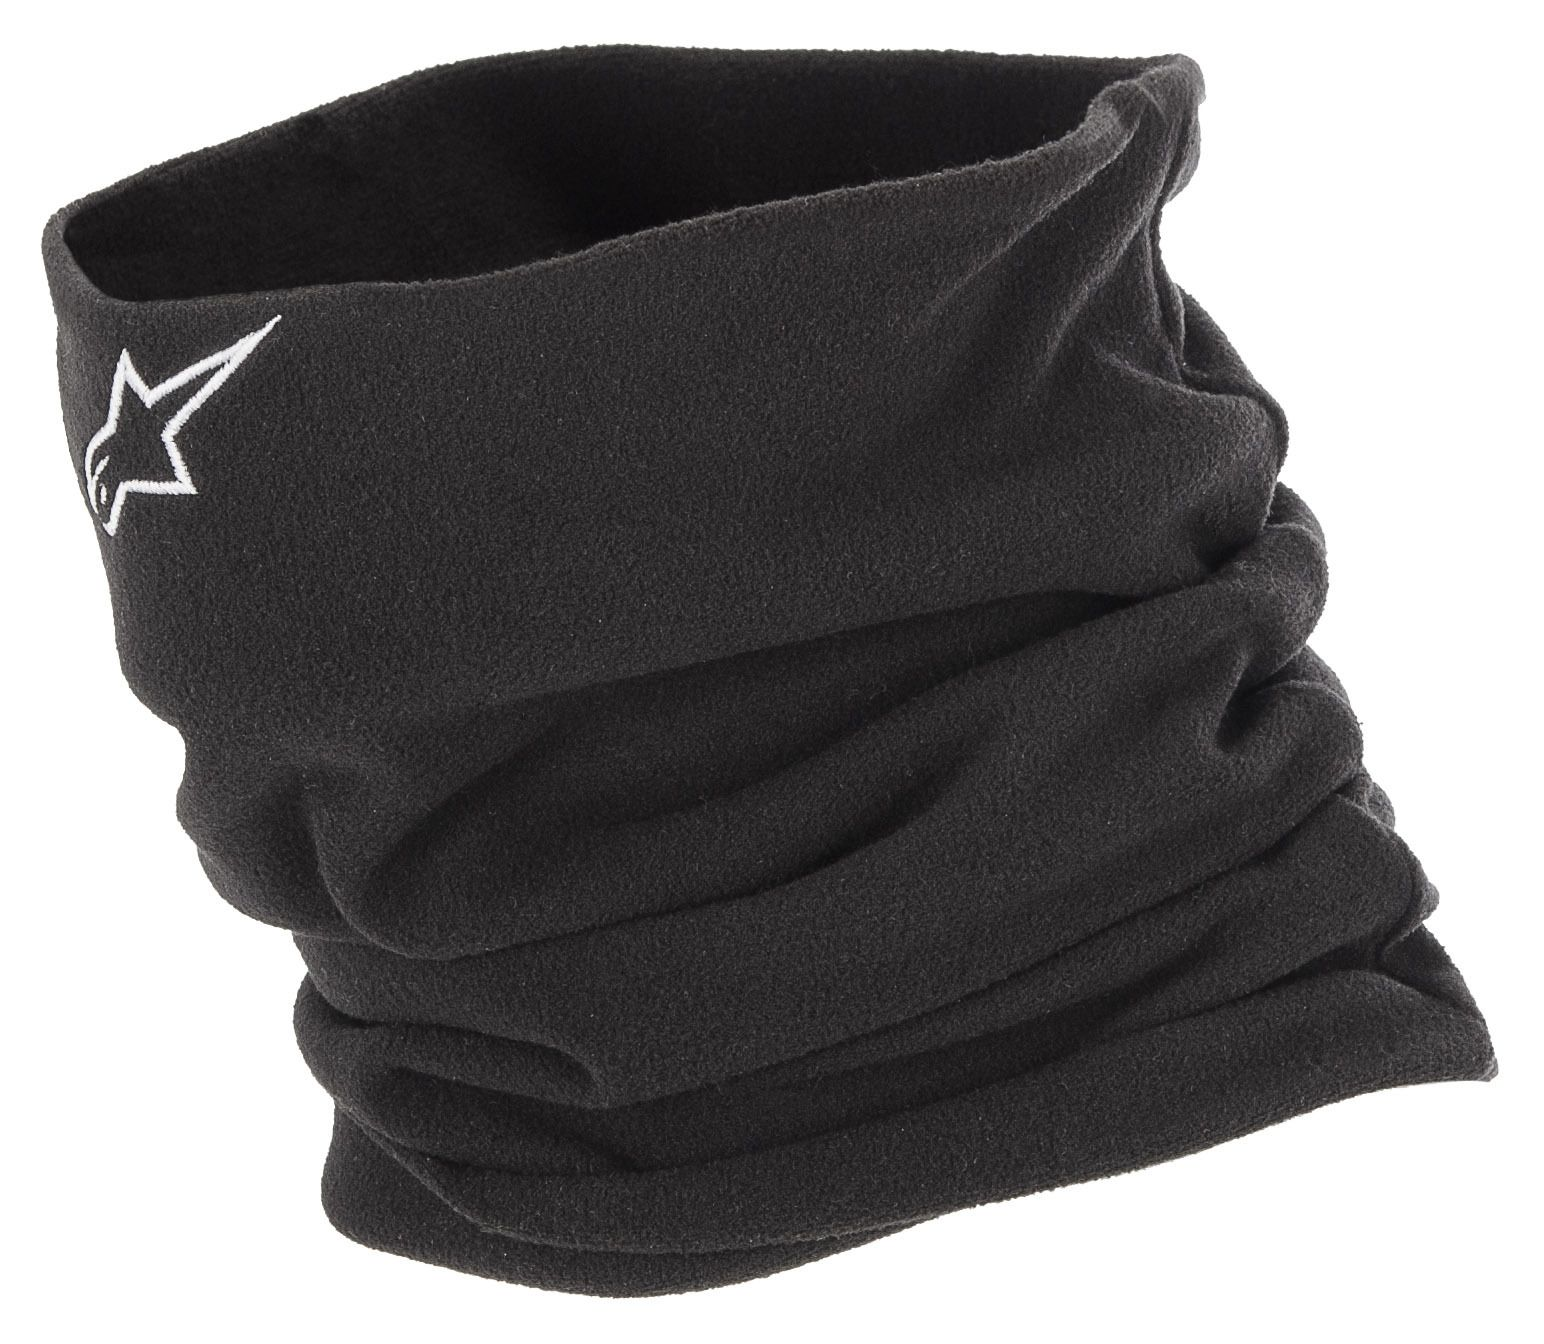 Alpinestars Neck Warmer Revzilla